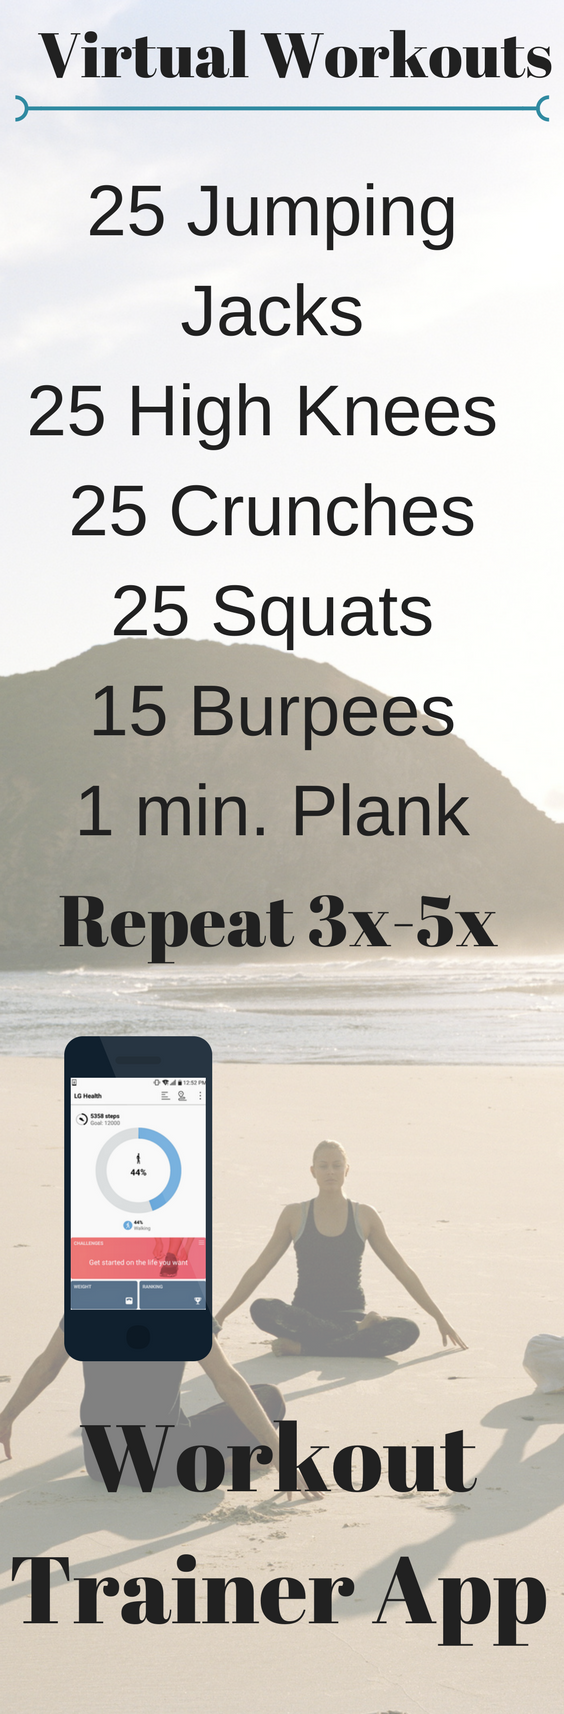 Free Workout Apps, Ditch the Gym Membership Free workout